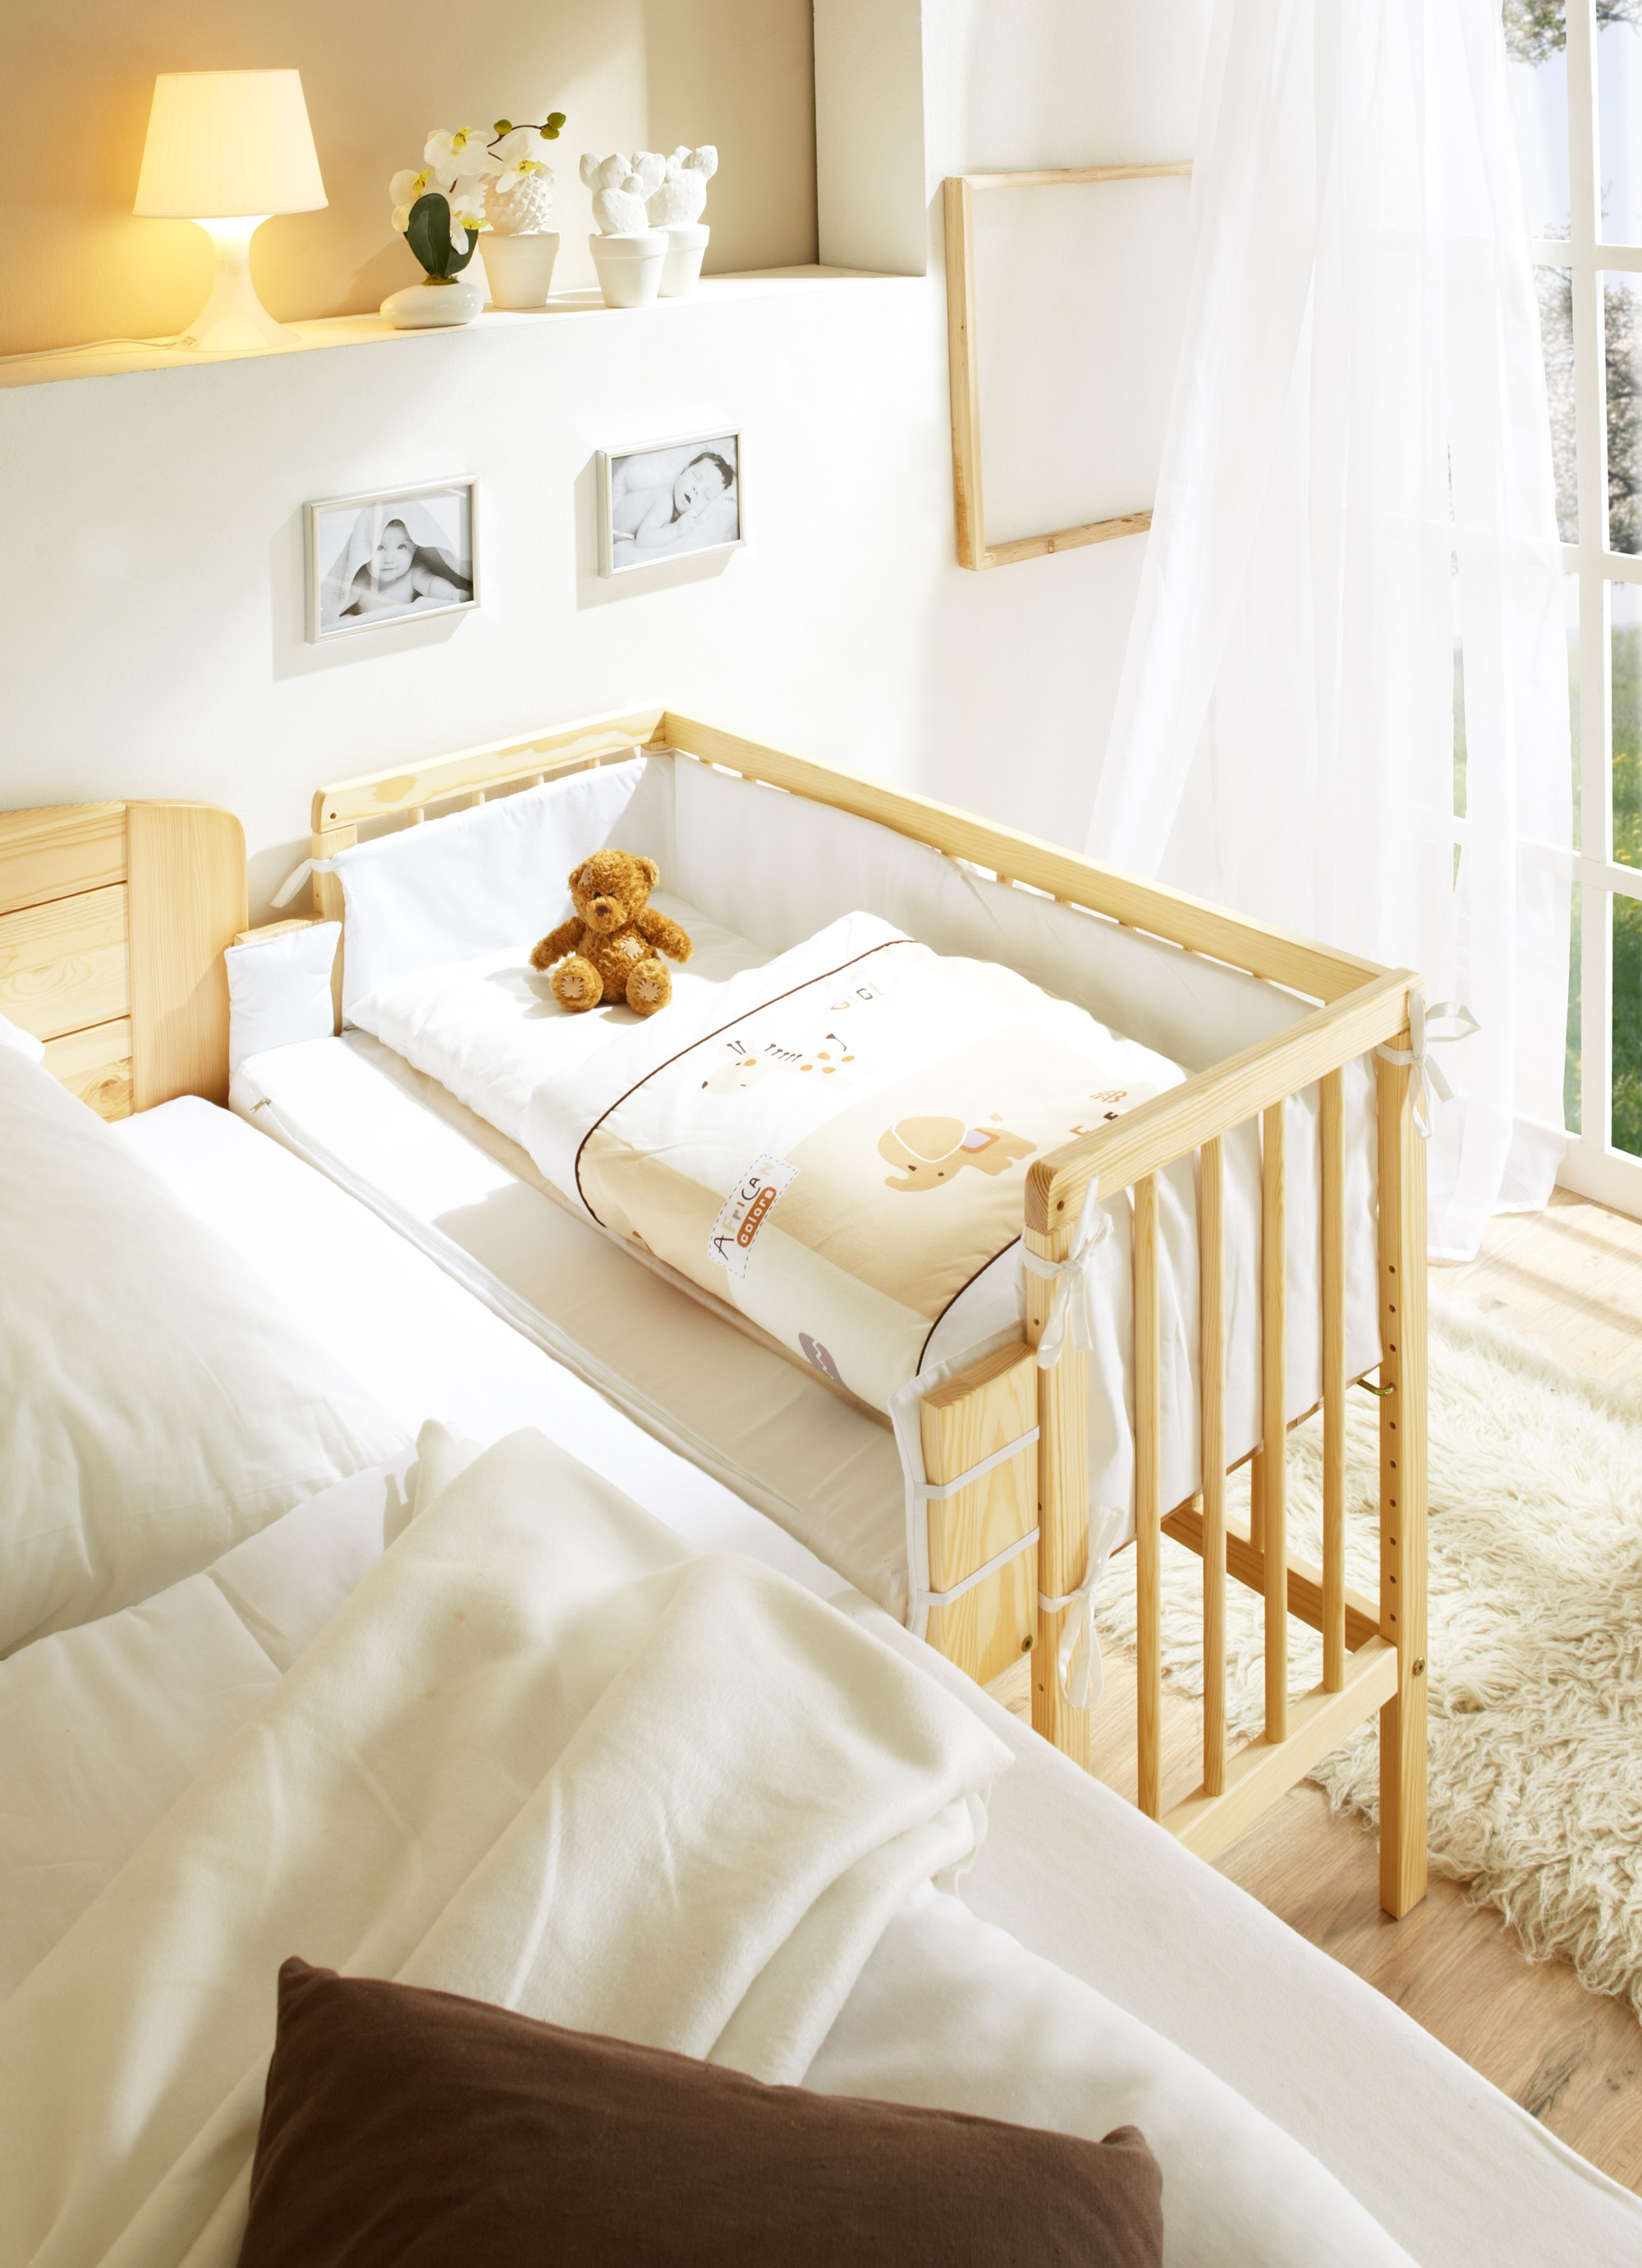 baby anstellbett kiefer natur h c m bel. Black Bedroom Furniture Sets. Home Design Ideas